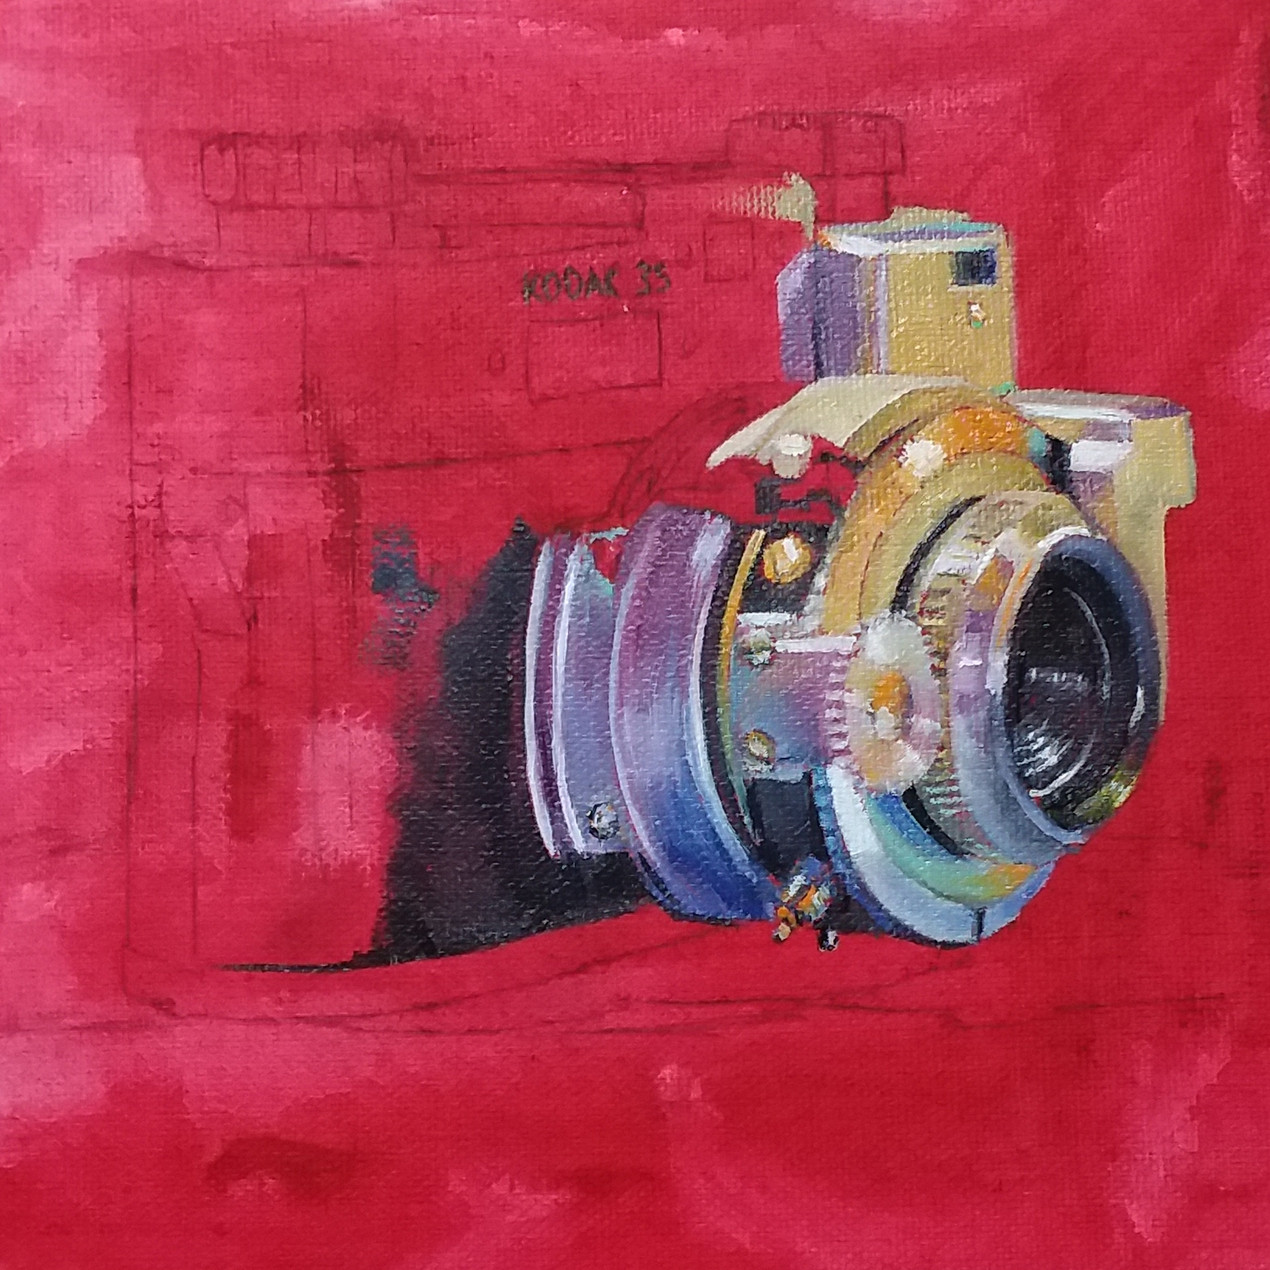 A painting in progress of an old camera